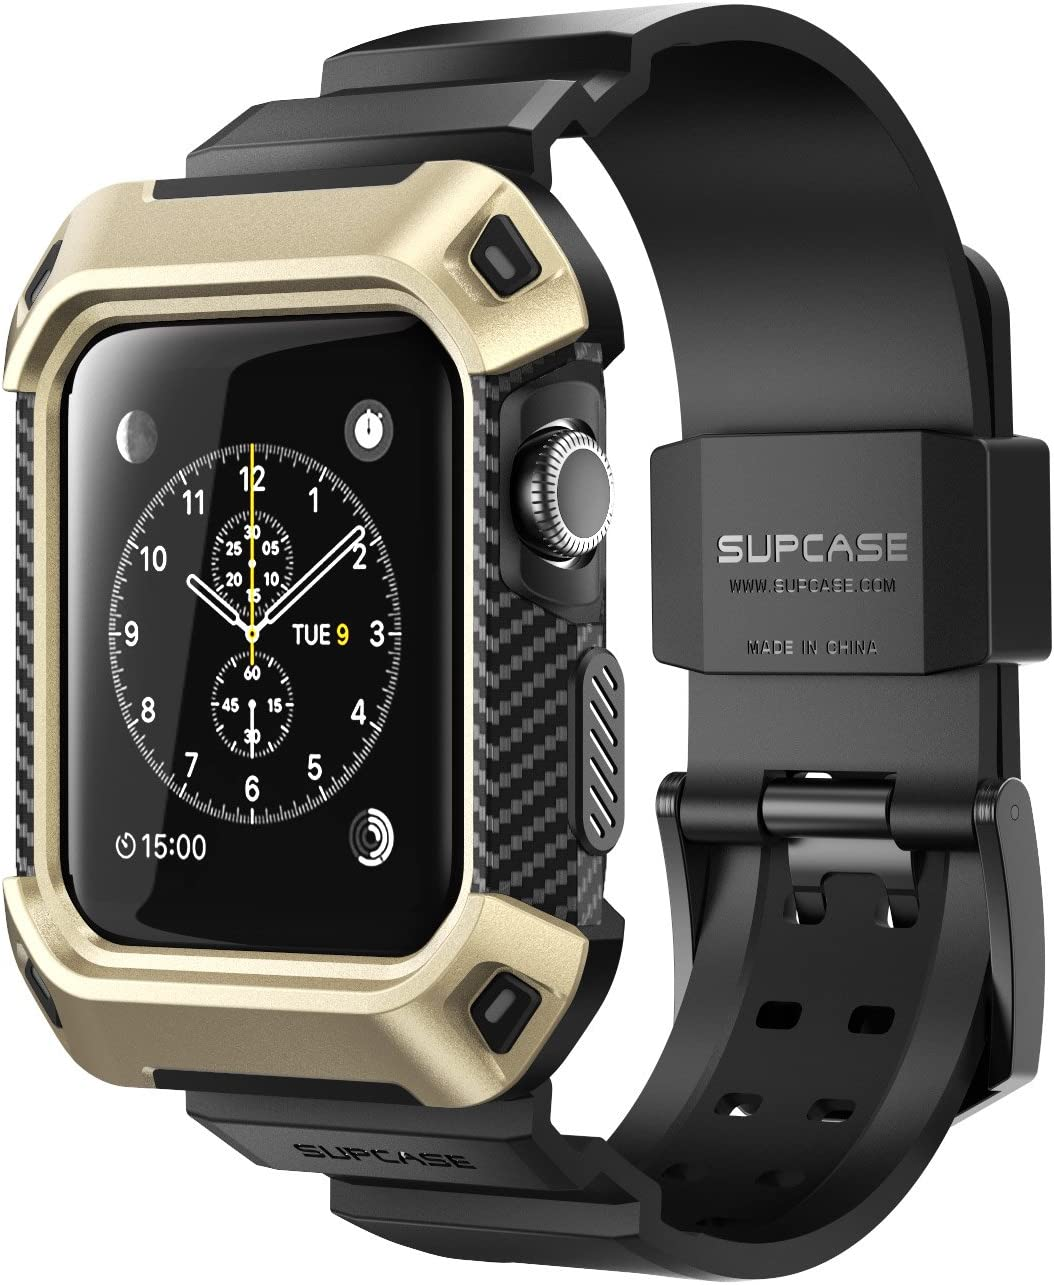 SUPCASE [Unicorn Beetle Pro] Case for Apple Watch 3 [42mm], Rugged Protective Case with Strap Bands for Apple Watch Series 3/2/1 (Gold)